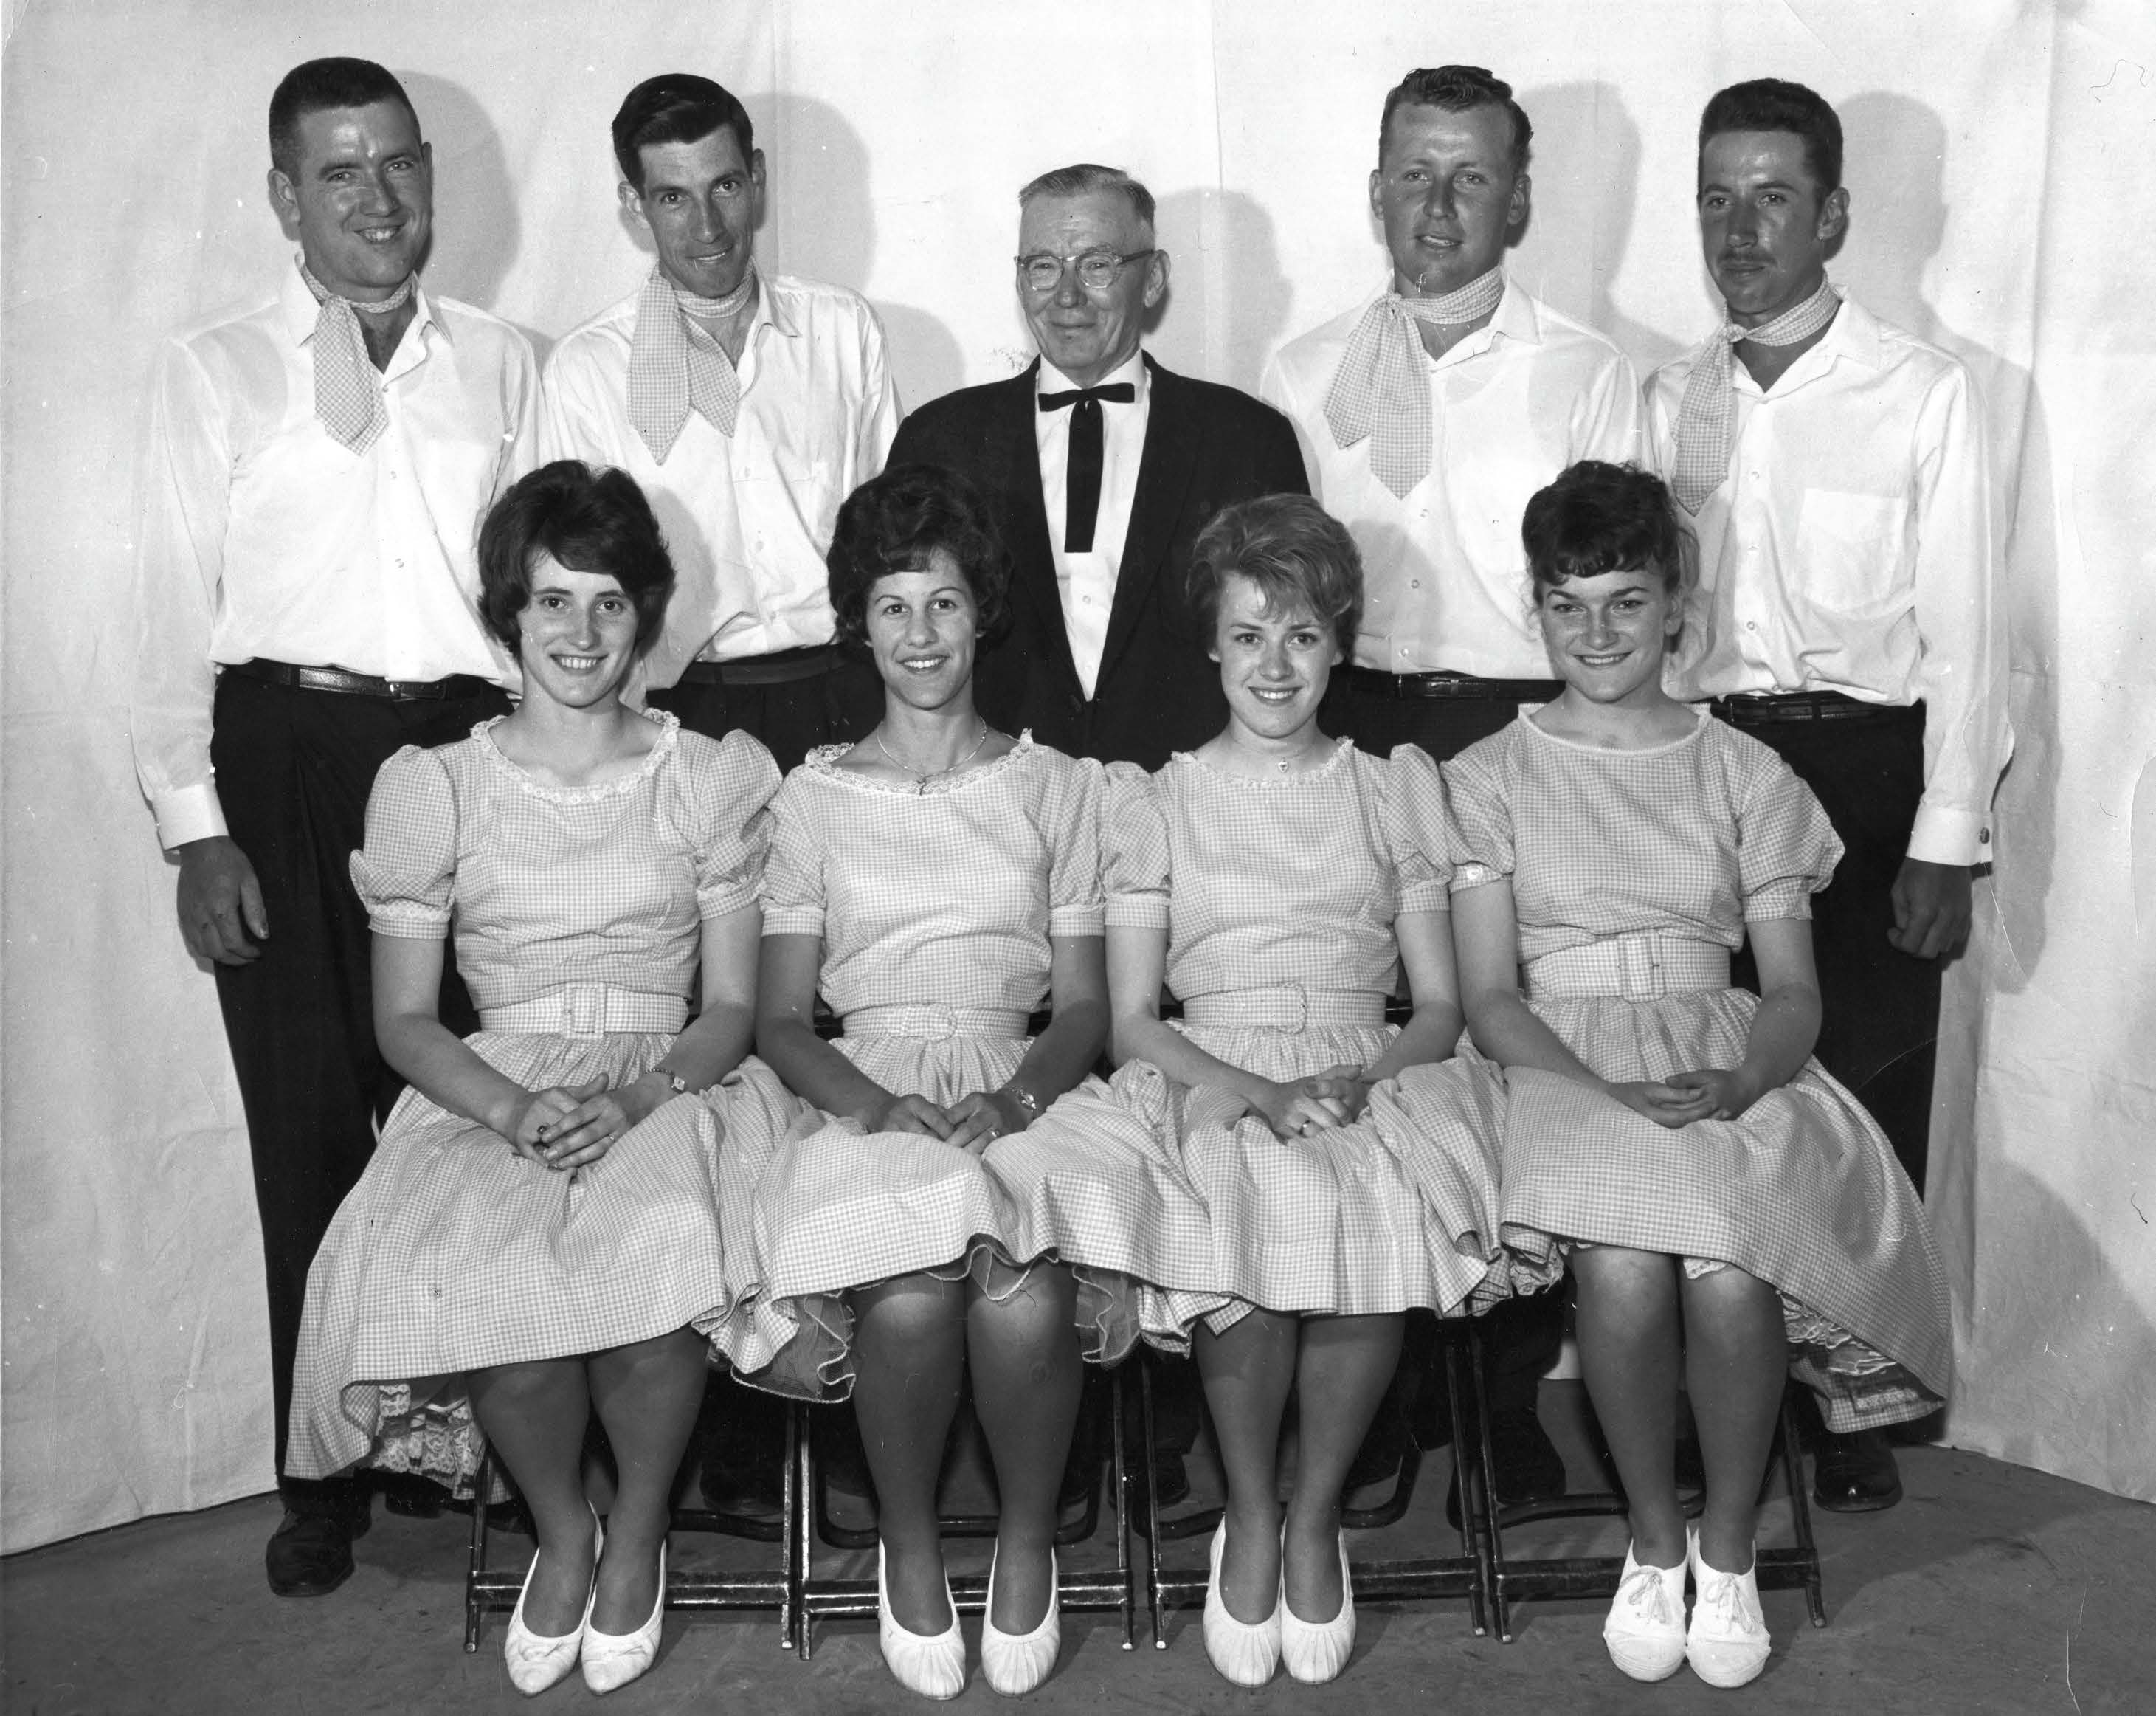 1963 Wellington County Jr. Farmer winners:  top from left:  Eugene Kelly, Don Patterson, Jimmy Leybourne, Everitt Bridge, Warren Ross.  Bottom from Left:  Julie (Weber) McCague, Willa (Tilden) Wick, Inez (Noble) Reed, Patti (Boyne) Nickel.